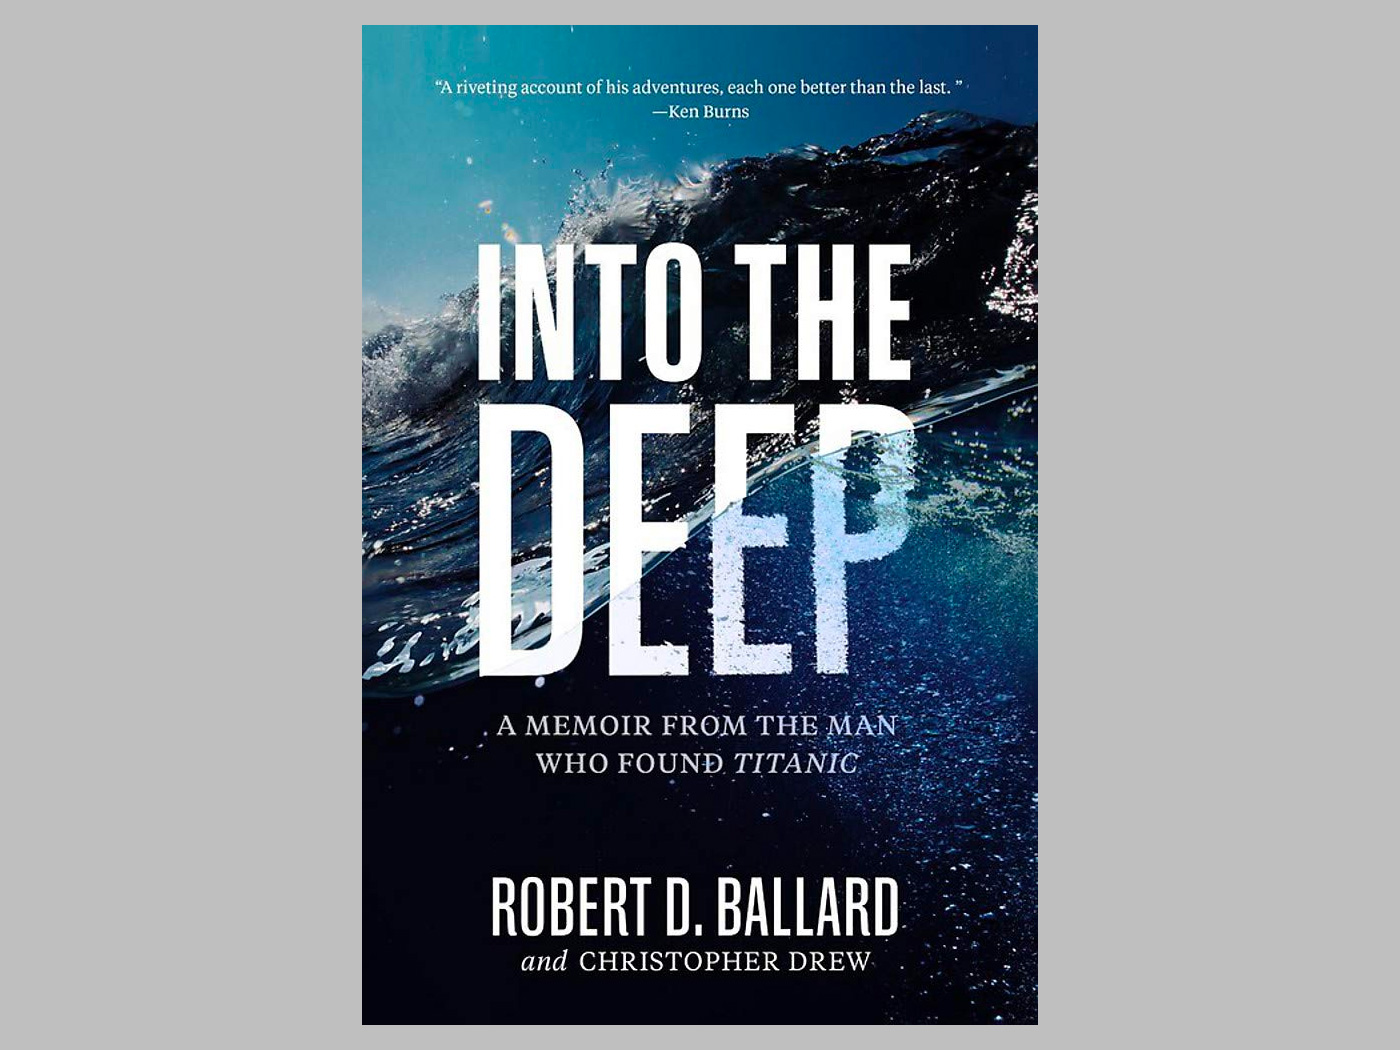 Into the Deep: A Memoir From the Man Who Found Titanic at werd.com